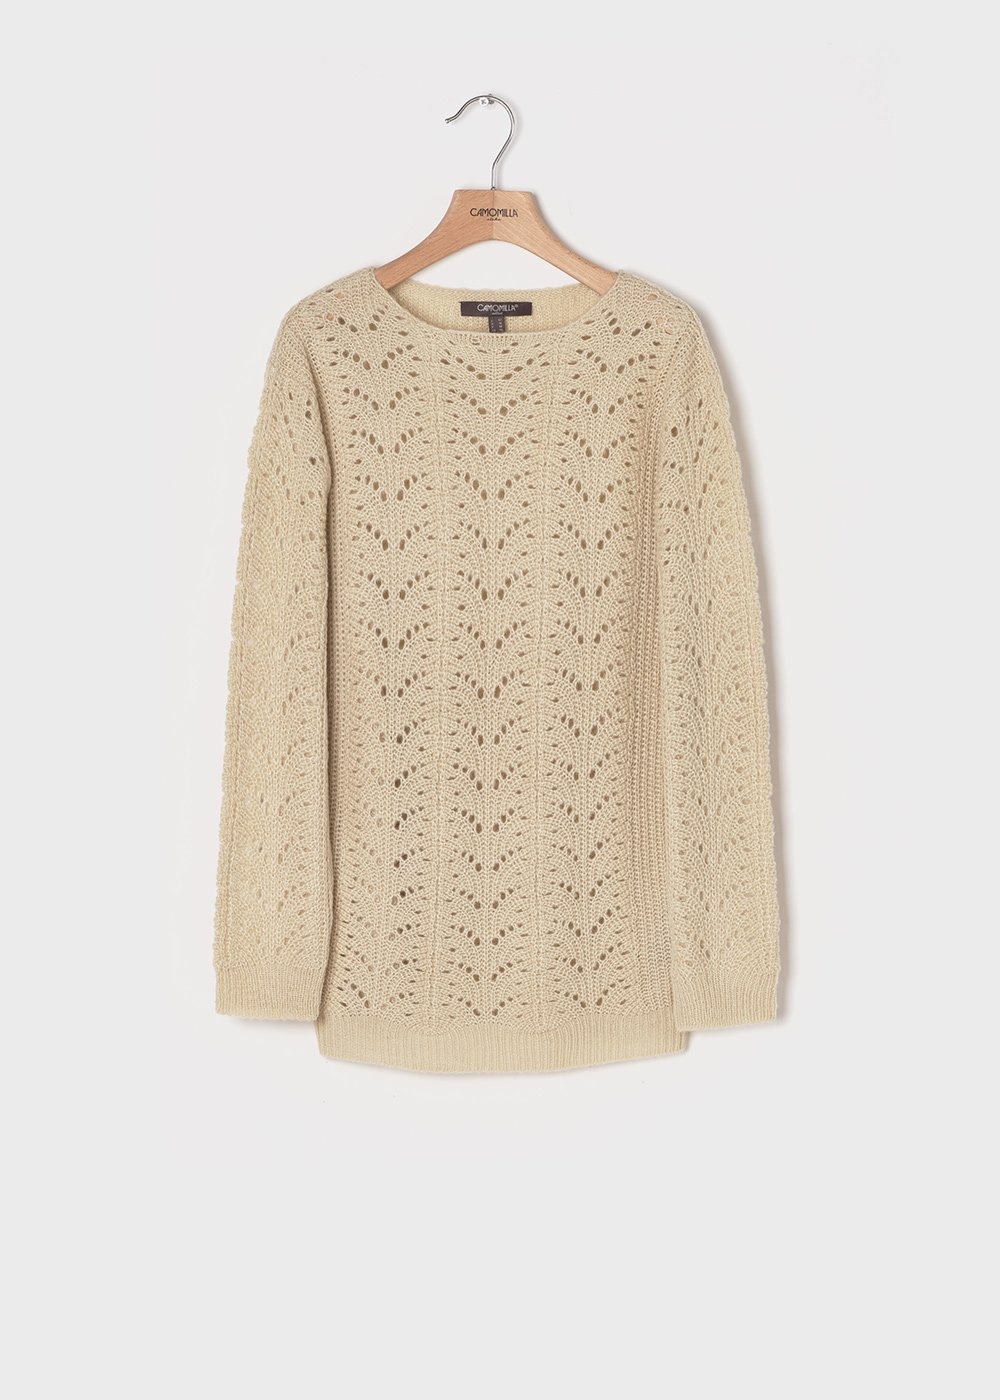 Fog-coloured sweater with openwork motifs - White - Woman